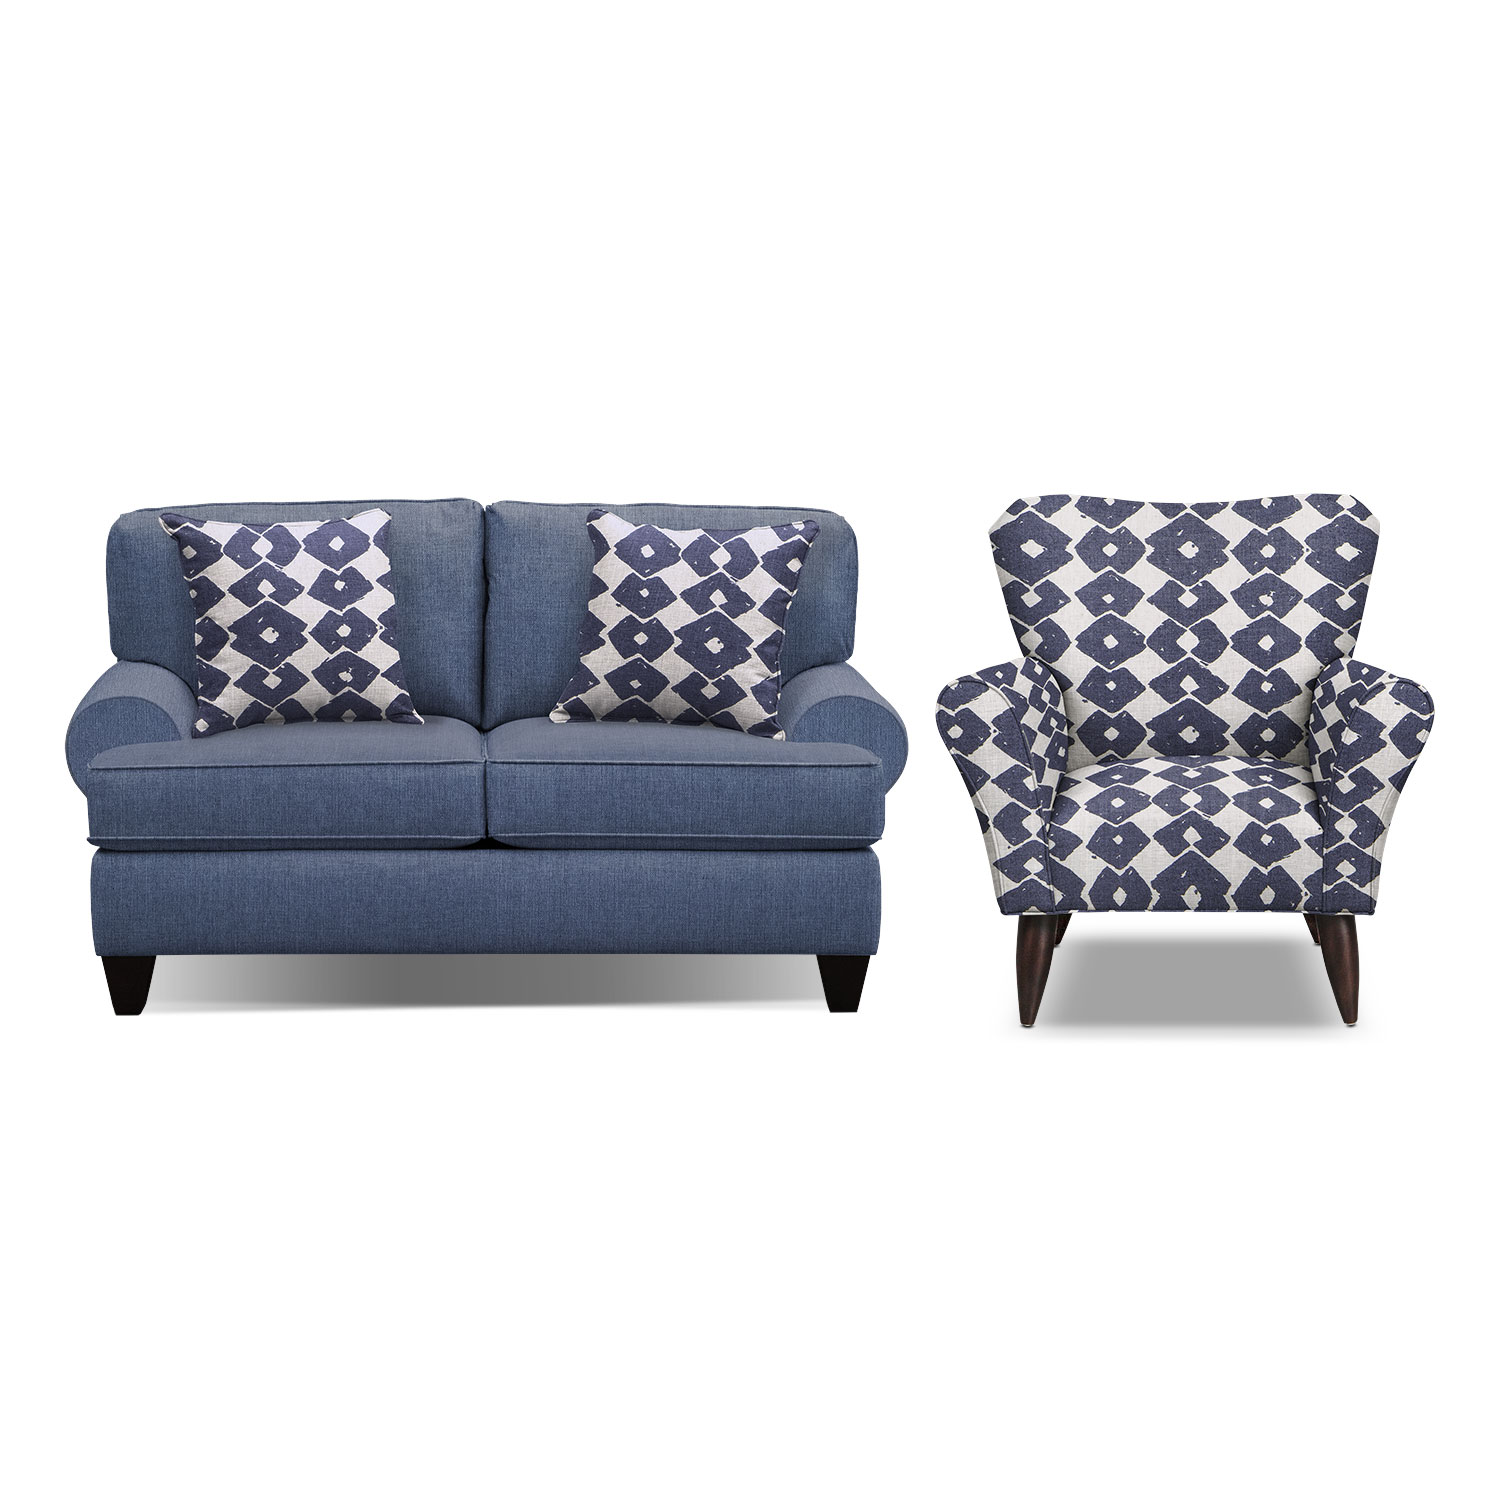 "Bailey Blue 67"" Sofa and Accent Chair Set"